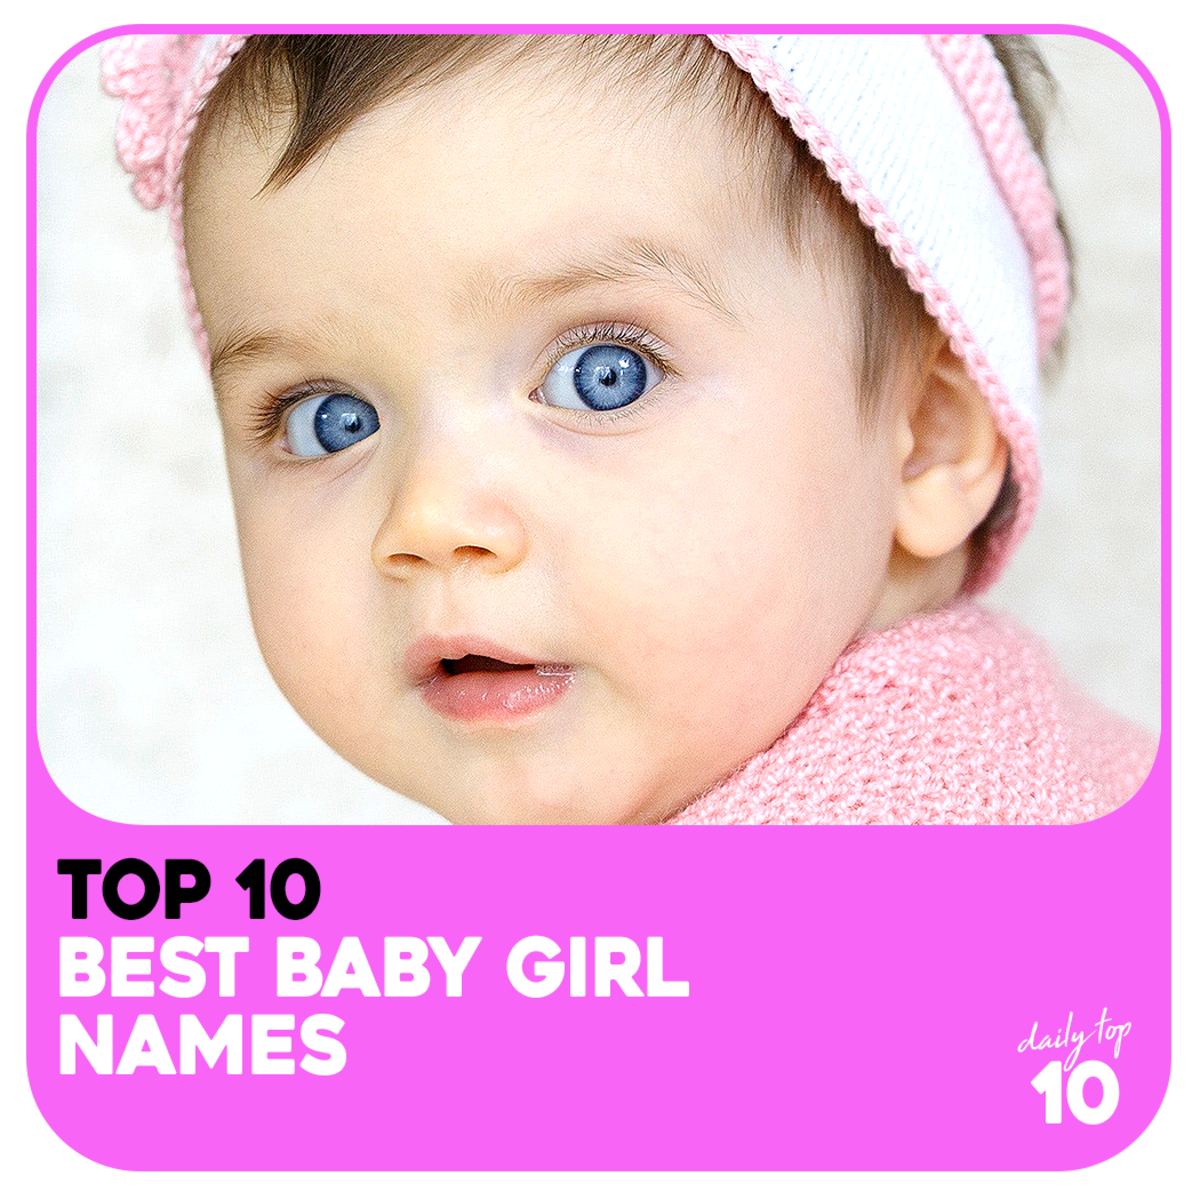 Top 10 Best Baby Girl Names From Famous Celebrities (With Pictures)